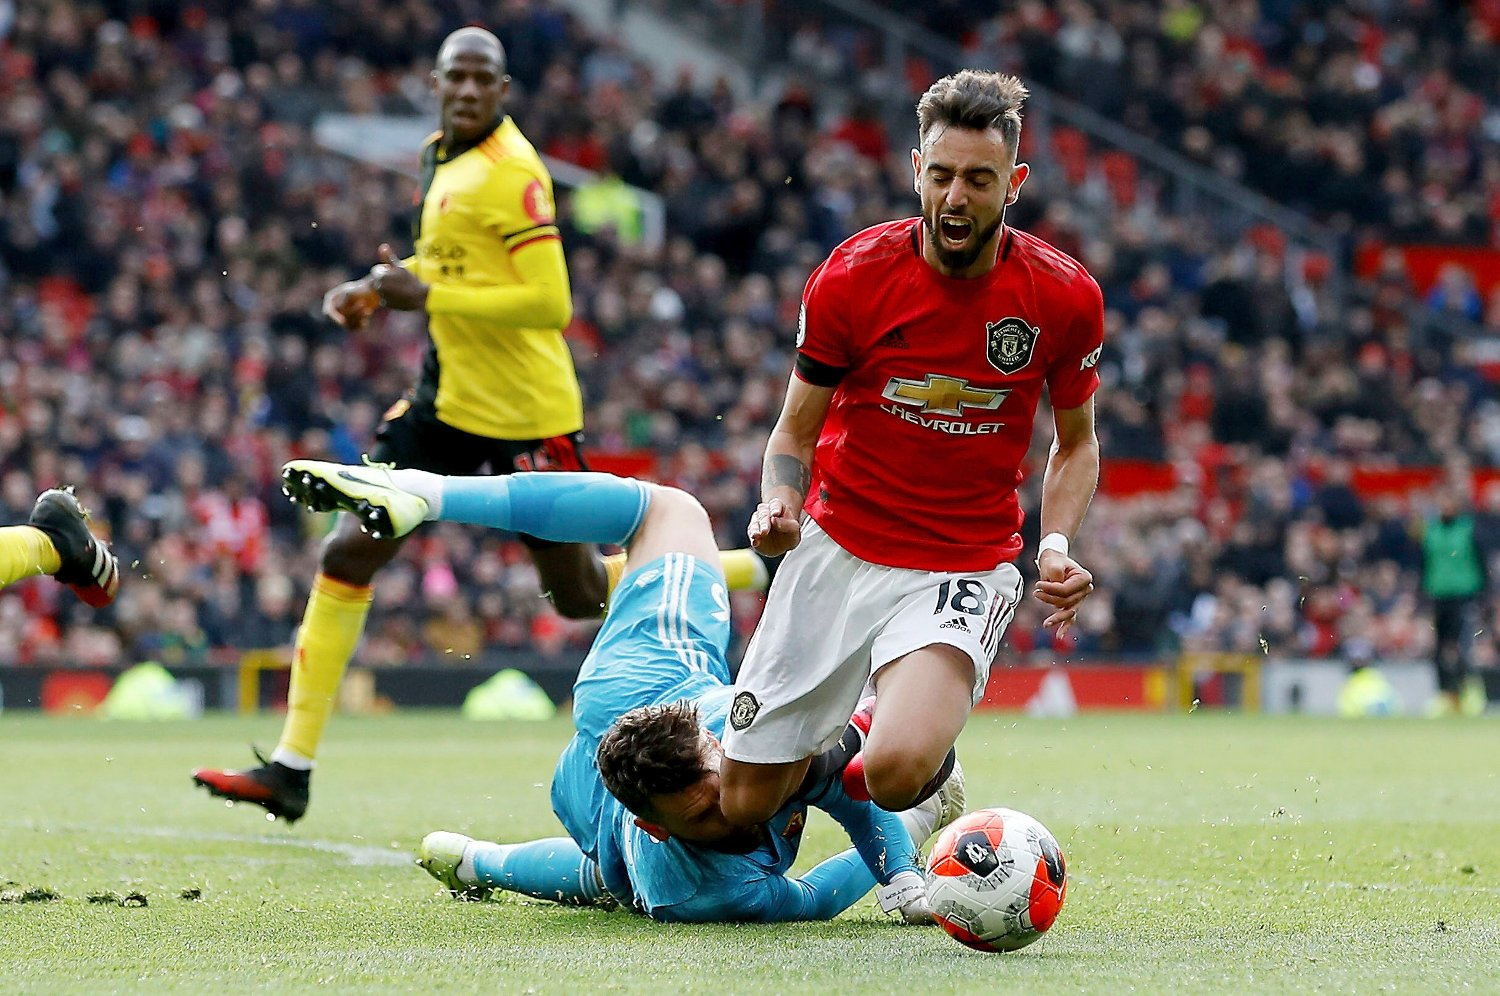 Britain Soccer Premier League Manchester United's Bruno Fernandes is brought down in the penalty area by Watford goalkeeper Ben Foster, during their English Premier League soccer match at Old Trafford in Manchester, England, Sunday Feb. 23, 2020. Fernandes went on to score from the penalty spot.